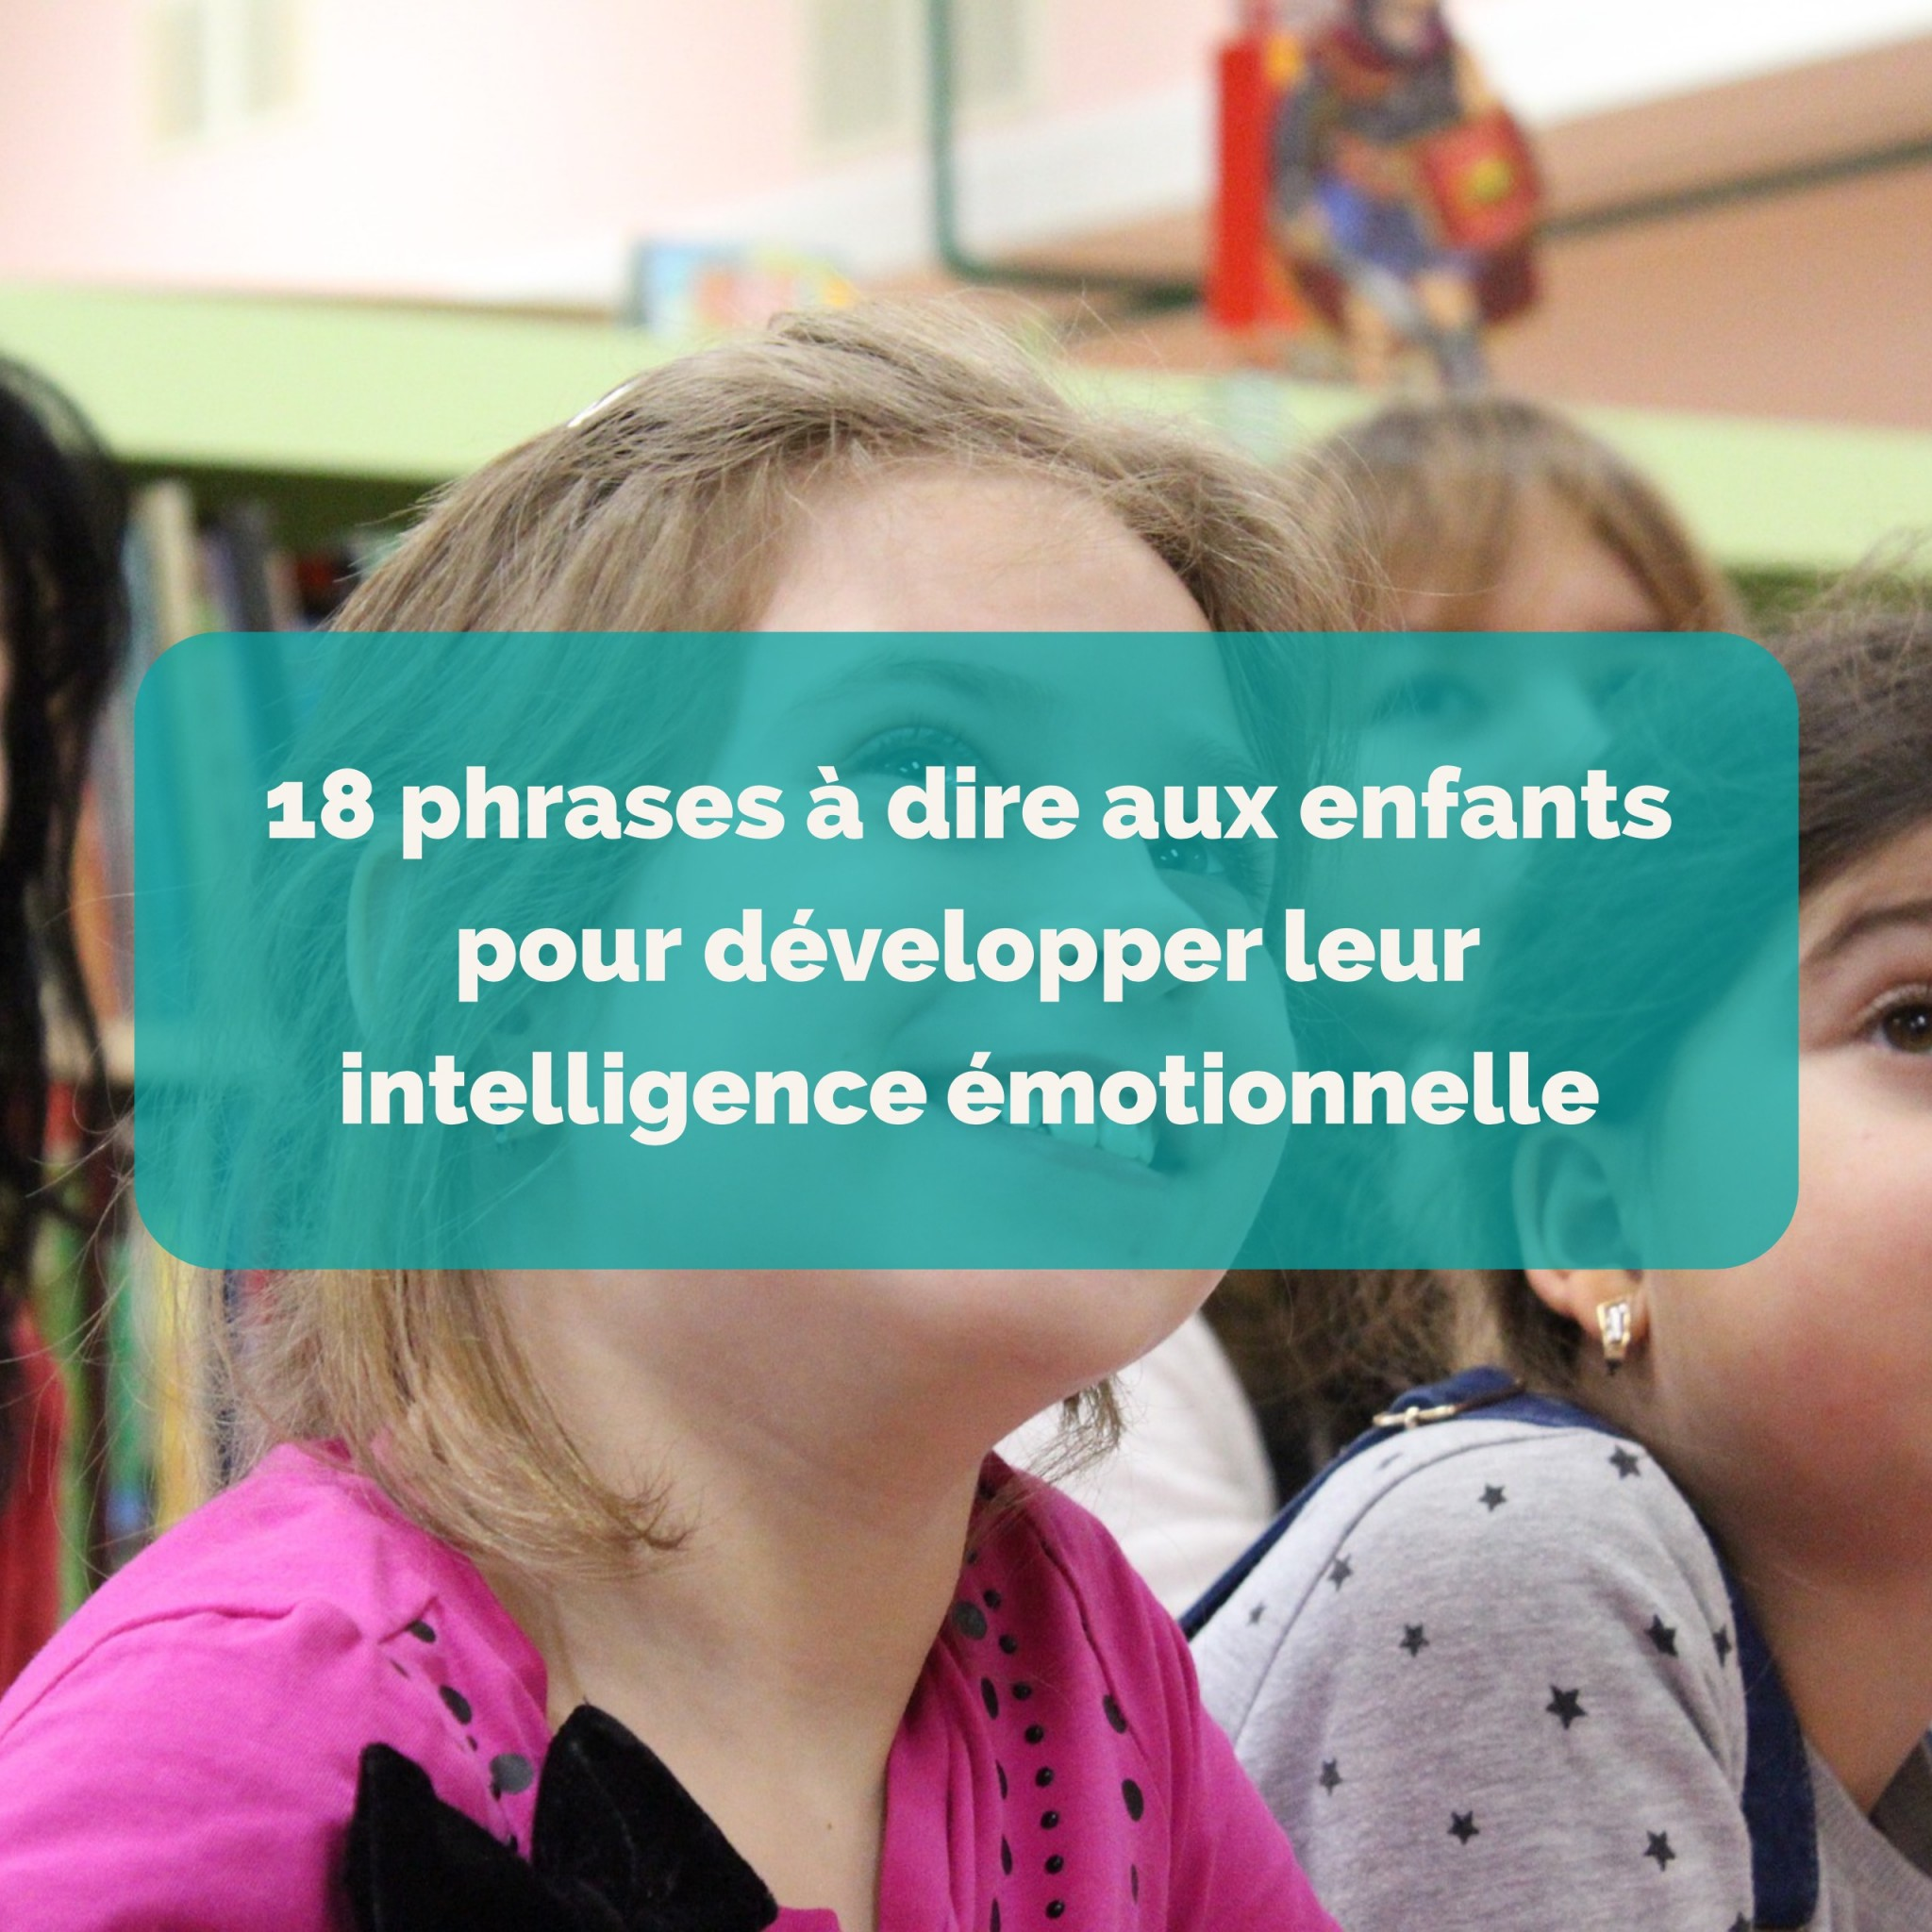 18-phrases-a-dire-aux-enfants-pour-developper-leur-intelligence-emotionnelle